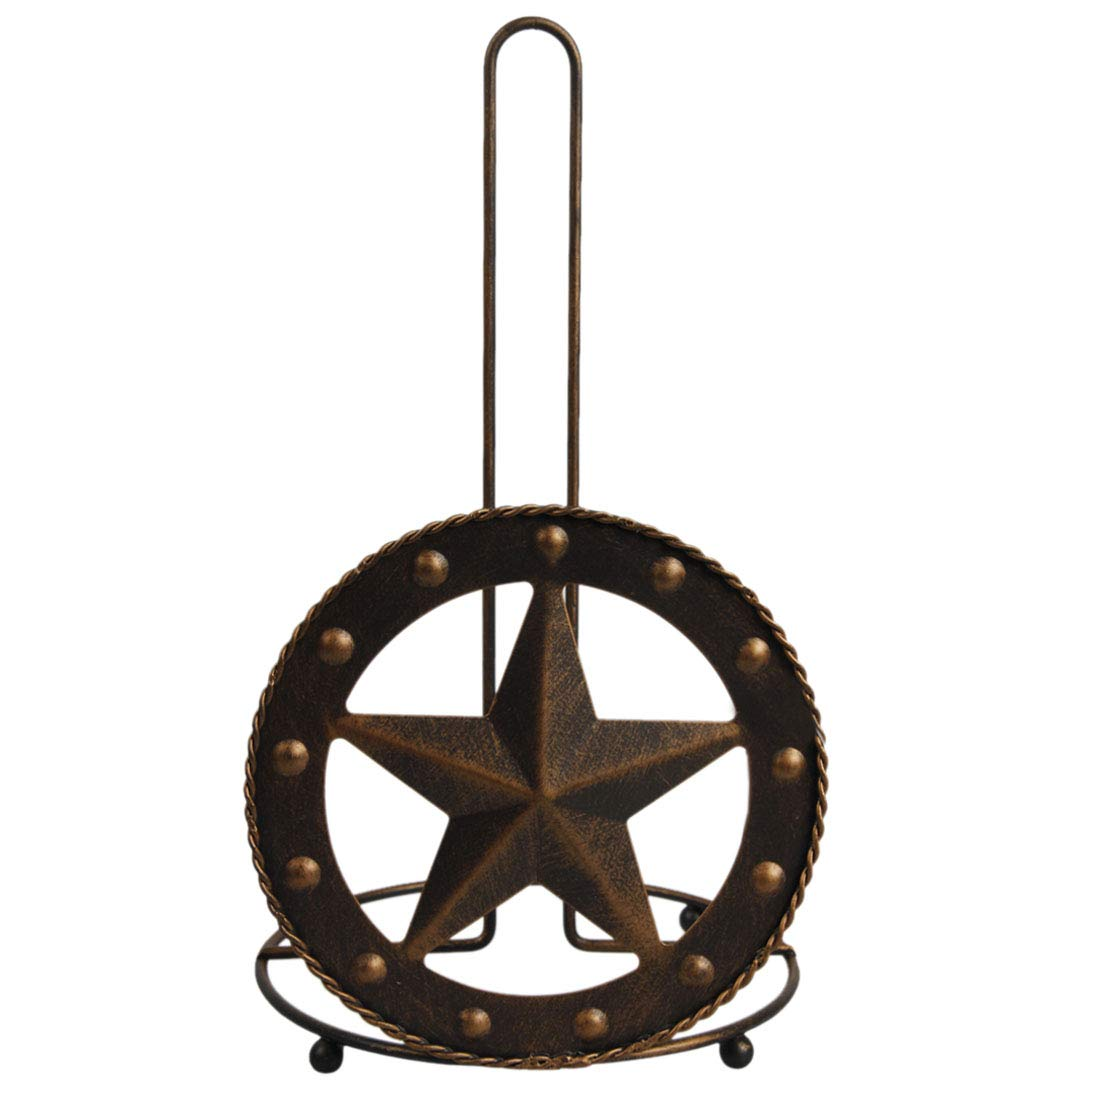 Texas Towel Paper Holder Rustic Barn Star Vintage Western Home Crafts Toilet Napkin Holder